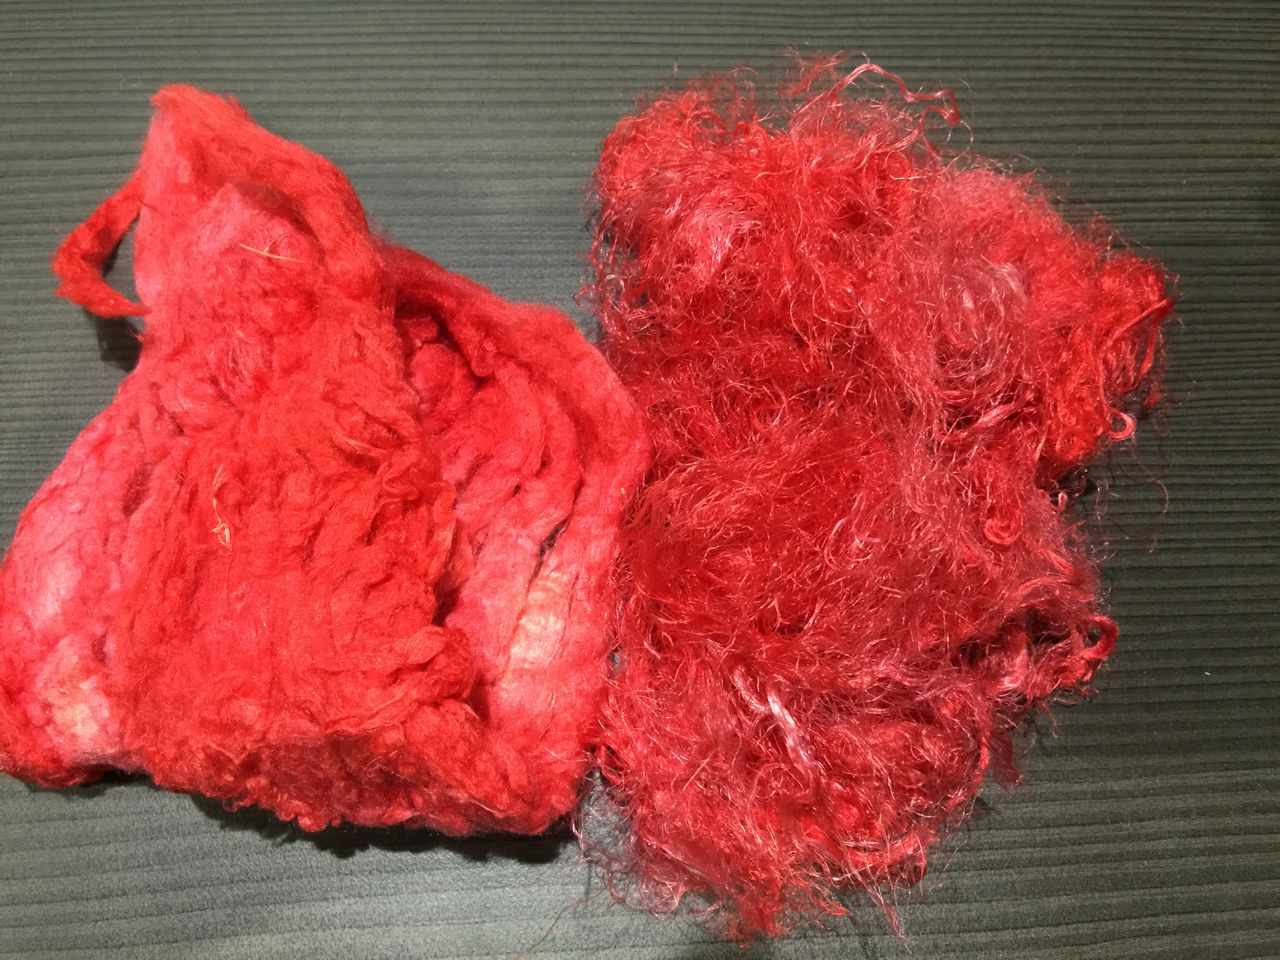 Hand-dyed Silk Noils and Silk Waste – Red Hot, So What